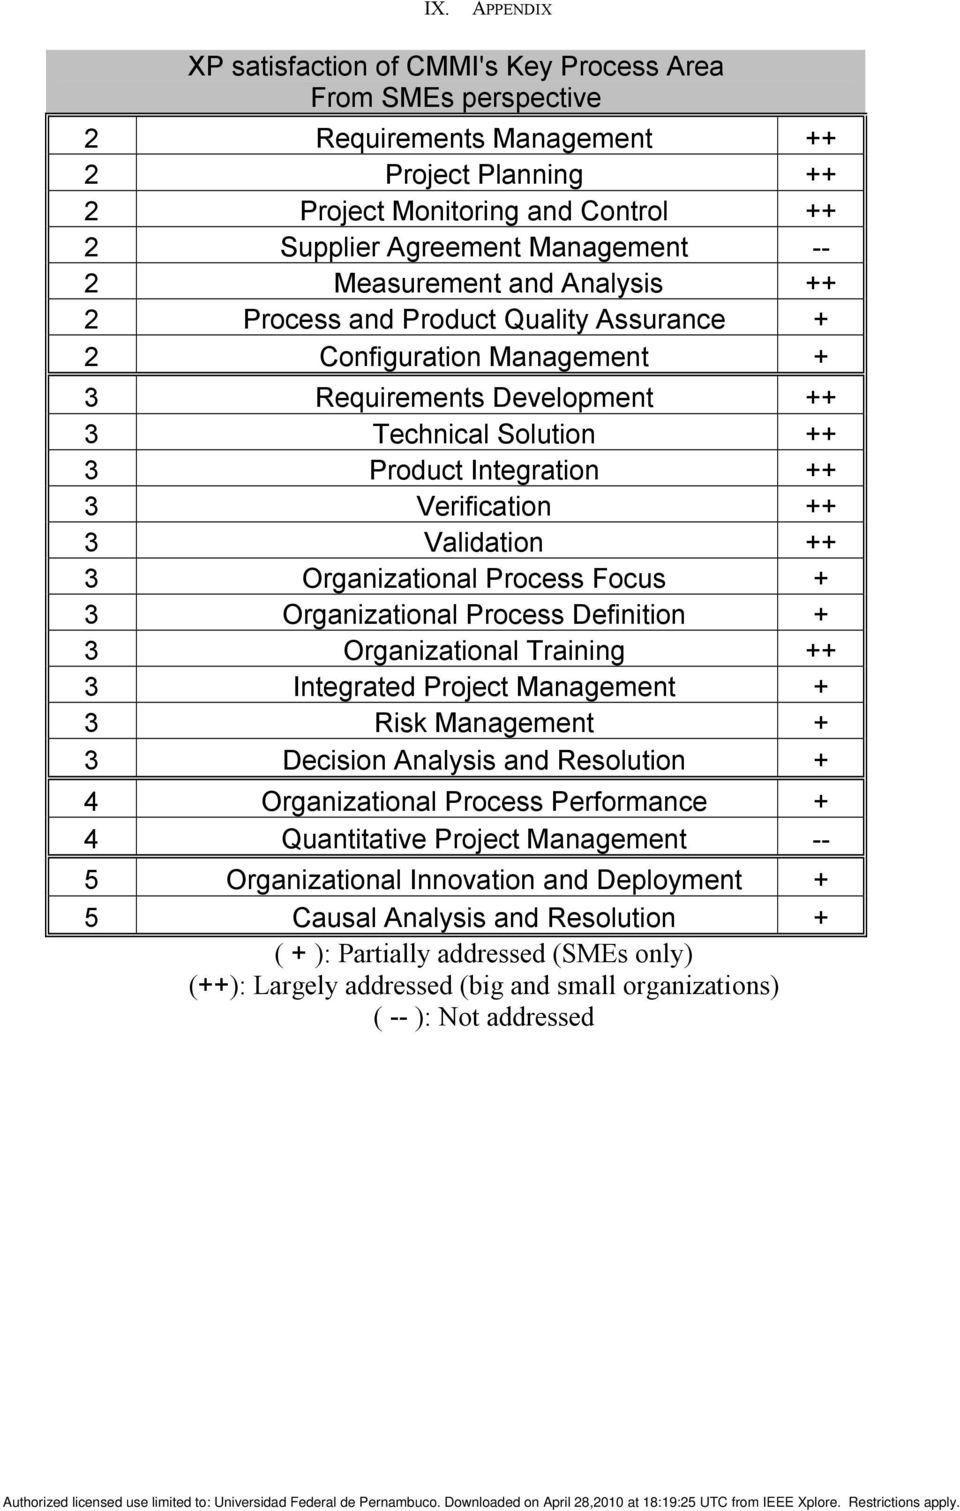 Validation ++ 3 Organizational Process Focus + 3 Organizational Process Definition + 3 Organizational Training ++ 3 Integrated Project Management + 3 Risk Management + 3 Decision Analysis and